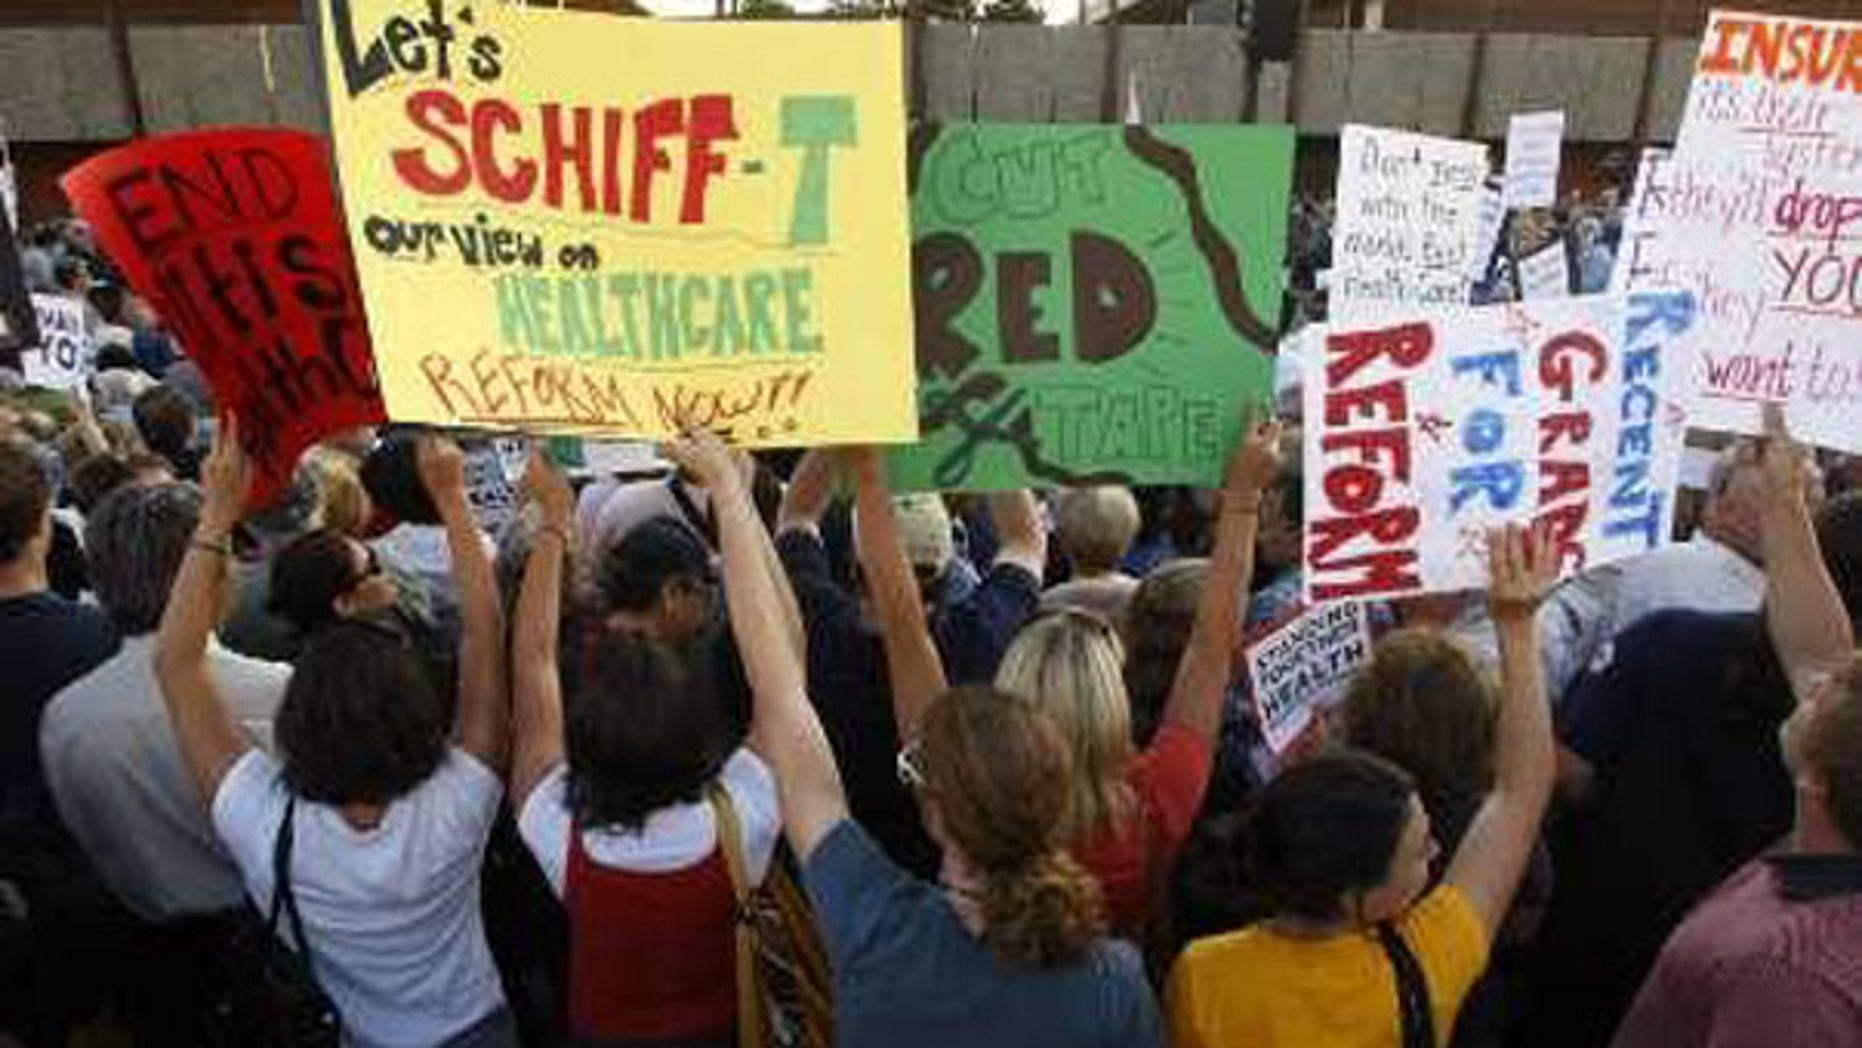 People hold up signs as they attend a town hall meeting on healthcare reform sponsored by Rep. Adam Schiff, D-Calif., in Alhambra, California, August 11, 2009. (Reuters)